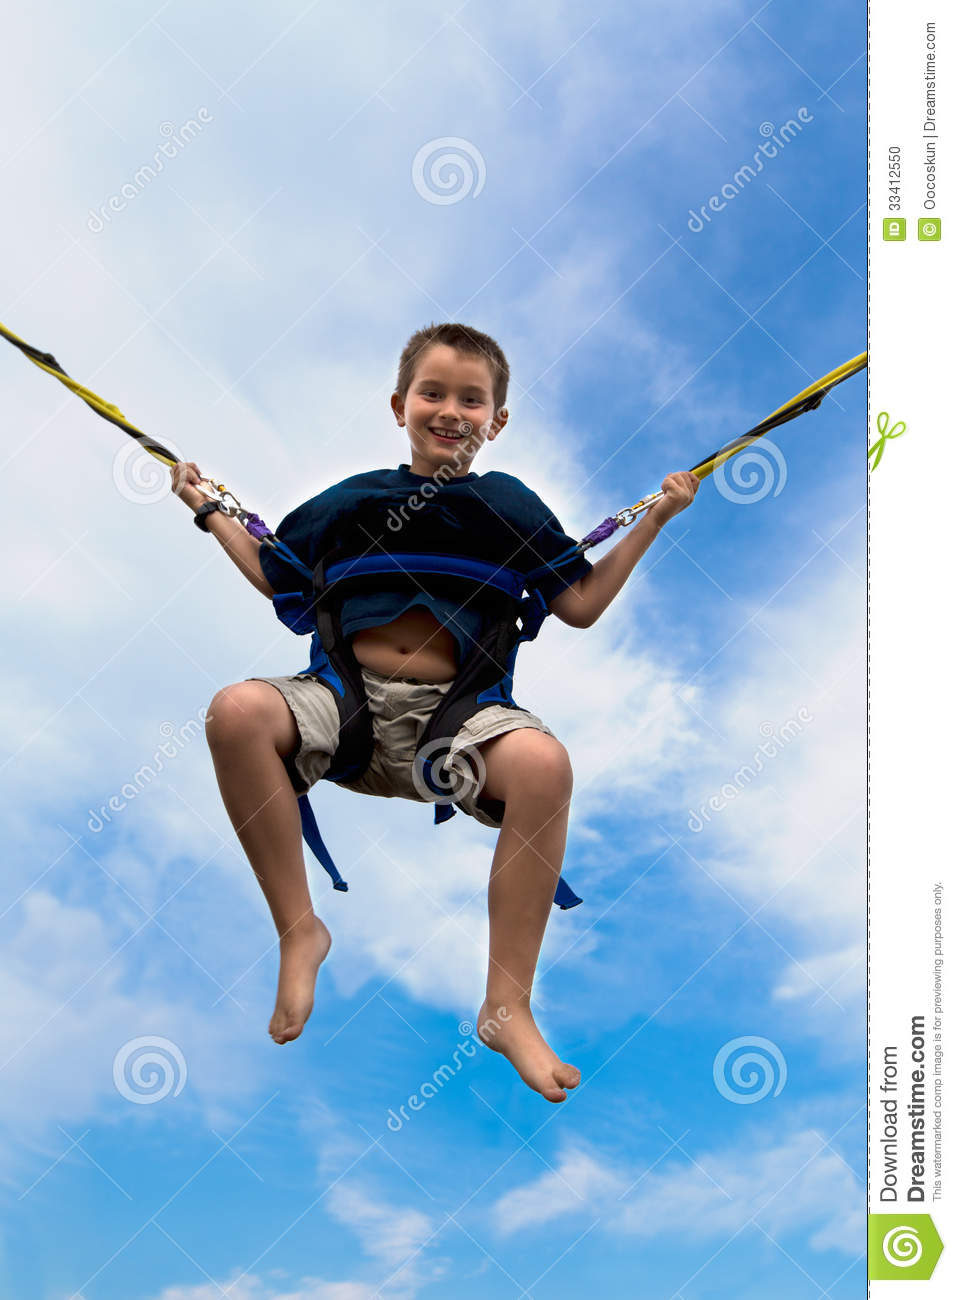 young boy swinging high air against cloudy blue summer sky harness attached to cables ropes beaming smile 33412550 young boy swinging high in the air stock photo image of handsome